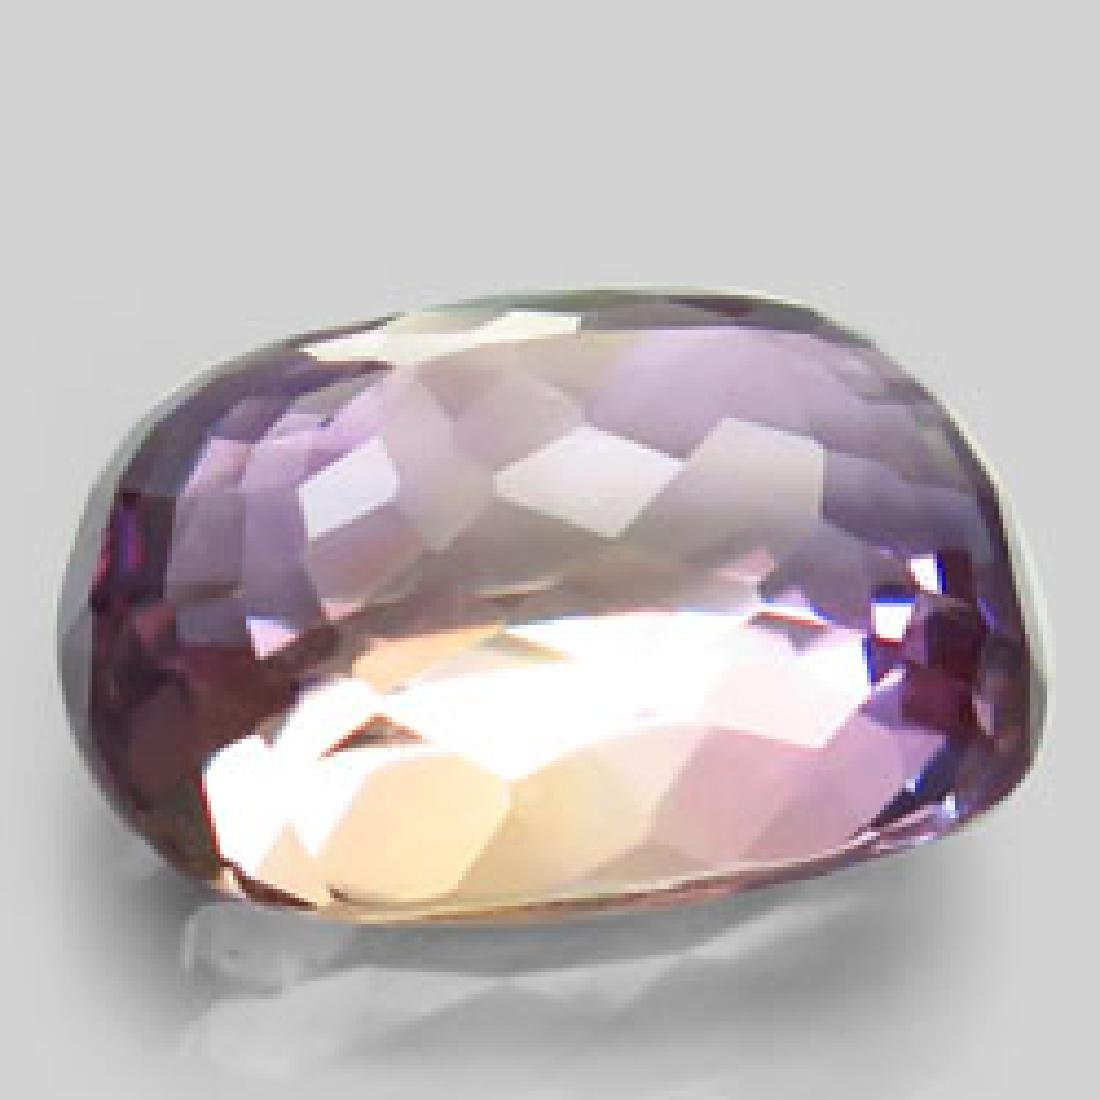 8.63ct 100%Natural Bi Color Ametrine Unheated Bolivia - 2